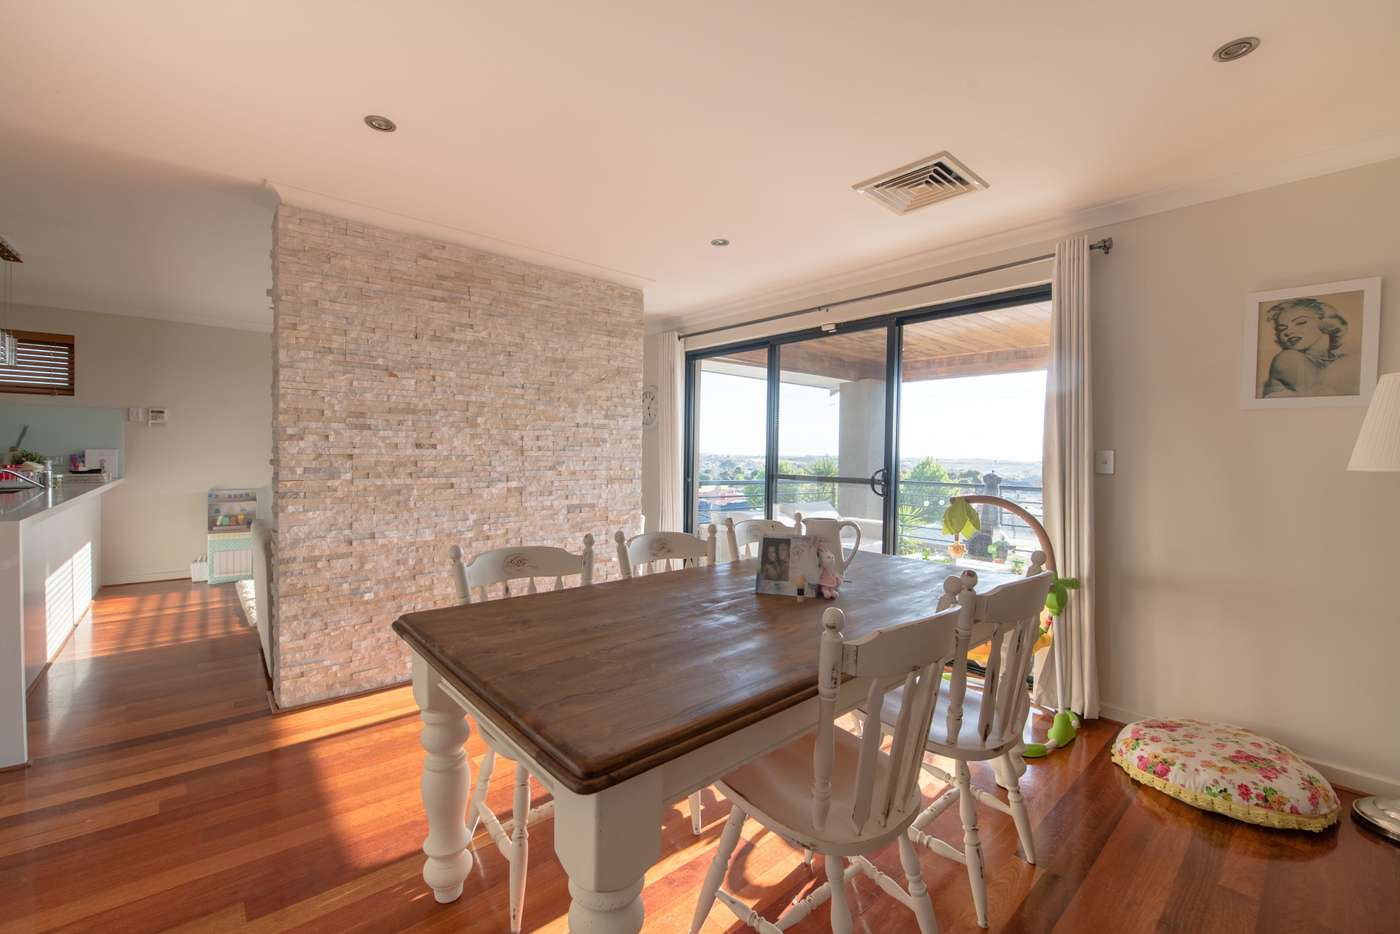 Fifth view of Homely house listing, 14 Seascape View, Yangebup WA 6164